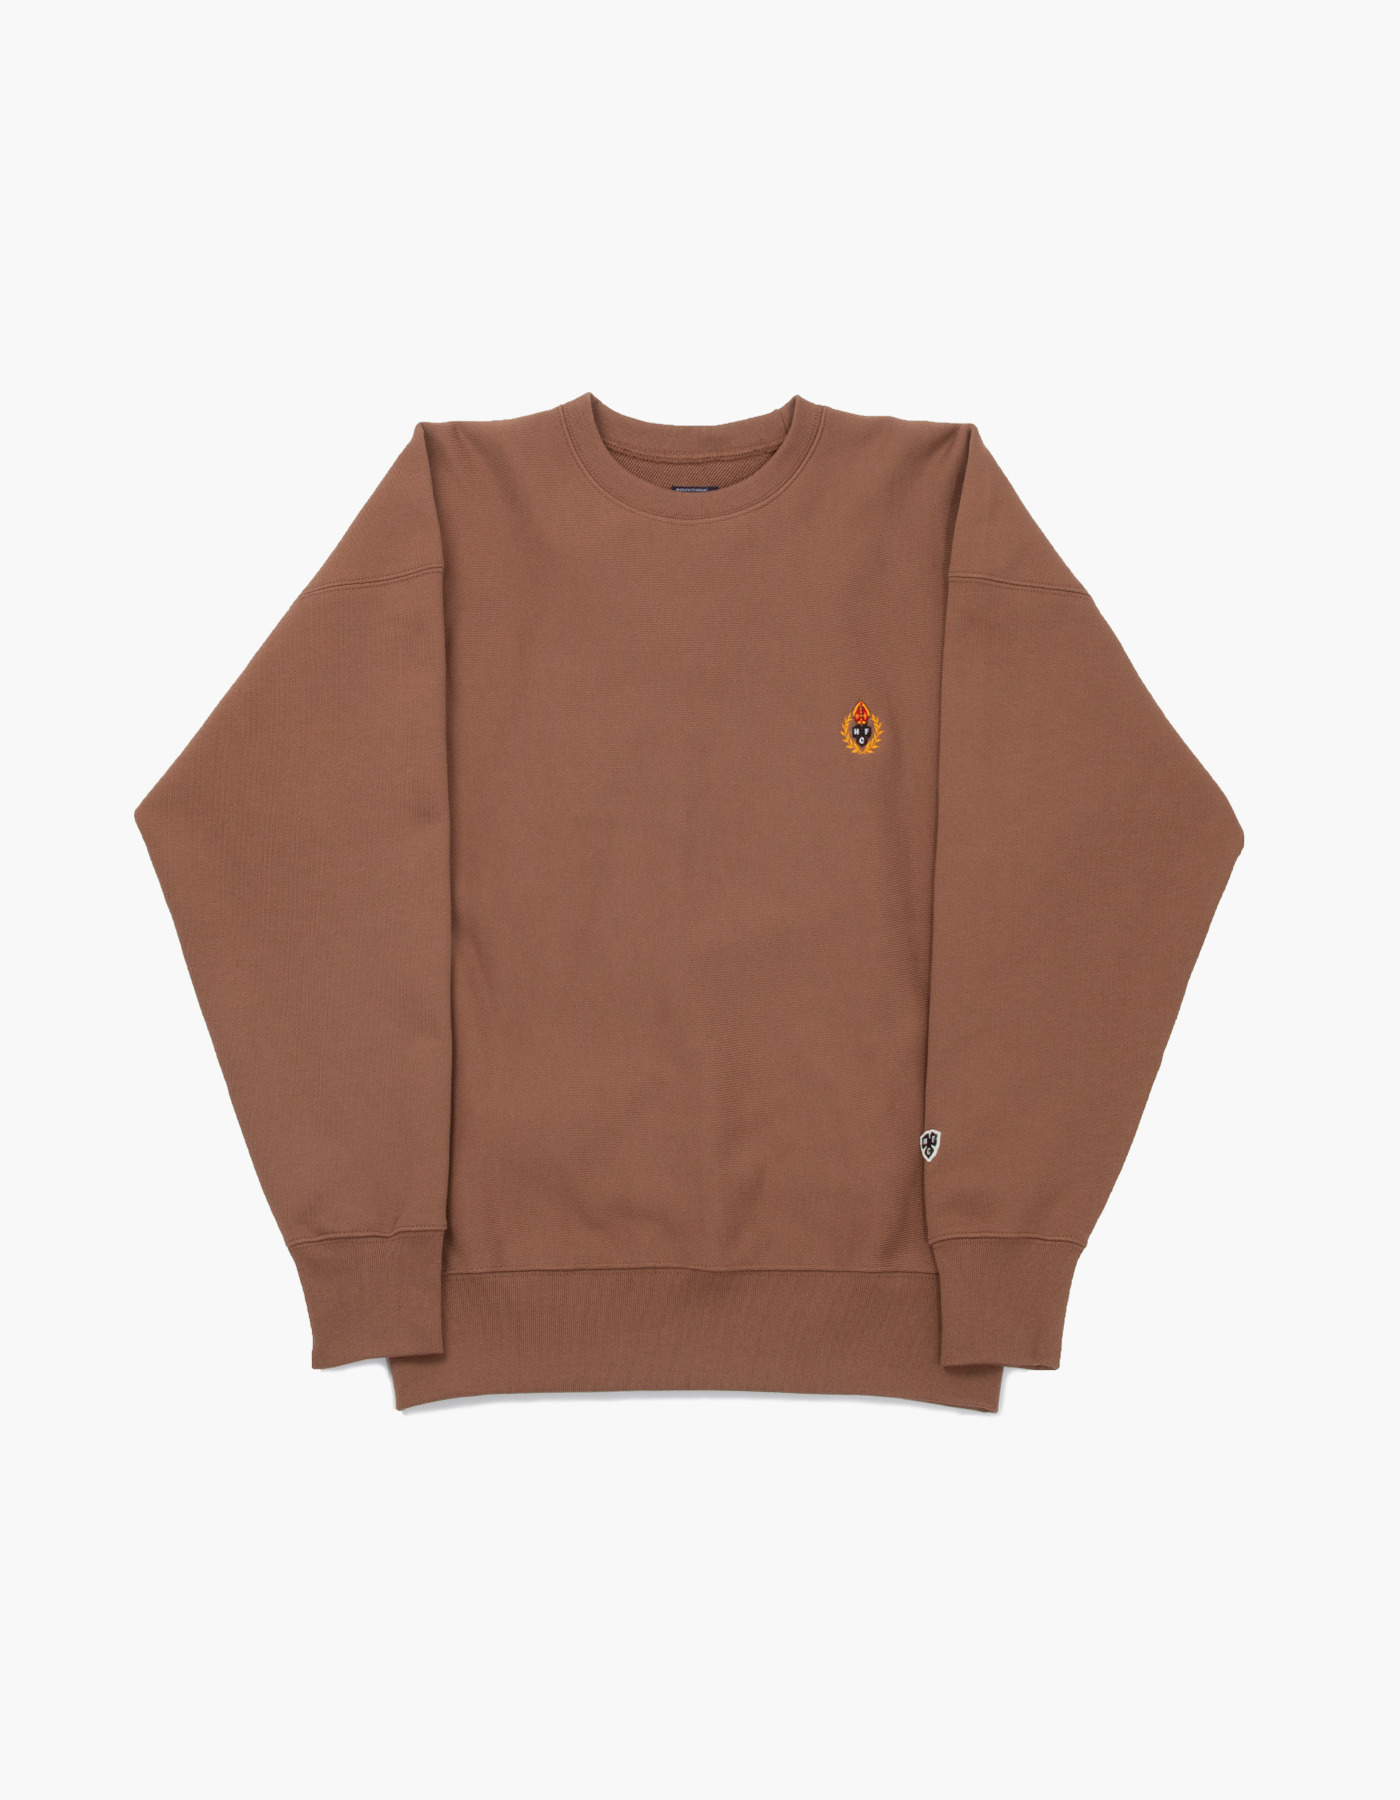 231 HFC CREWNECK / BROWN